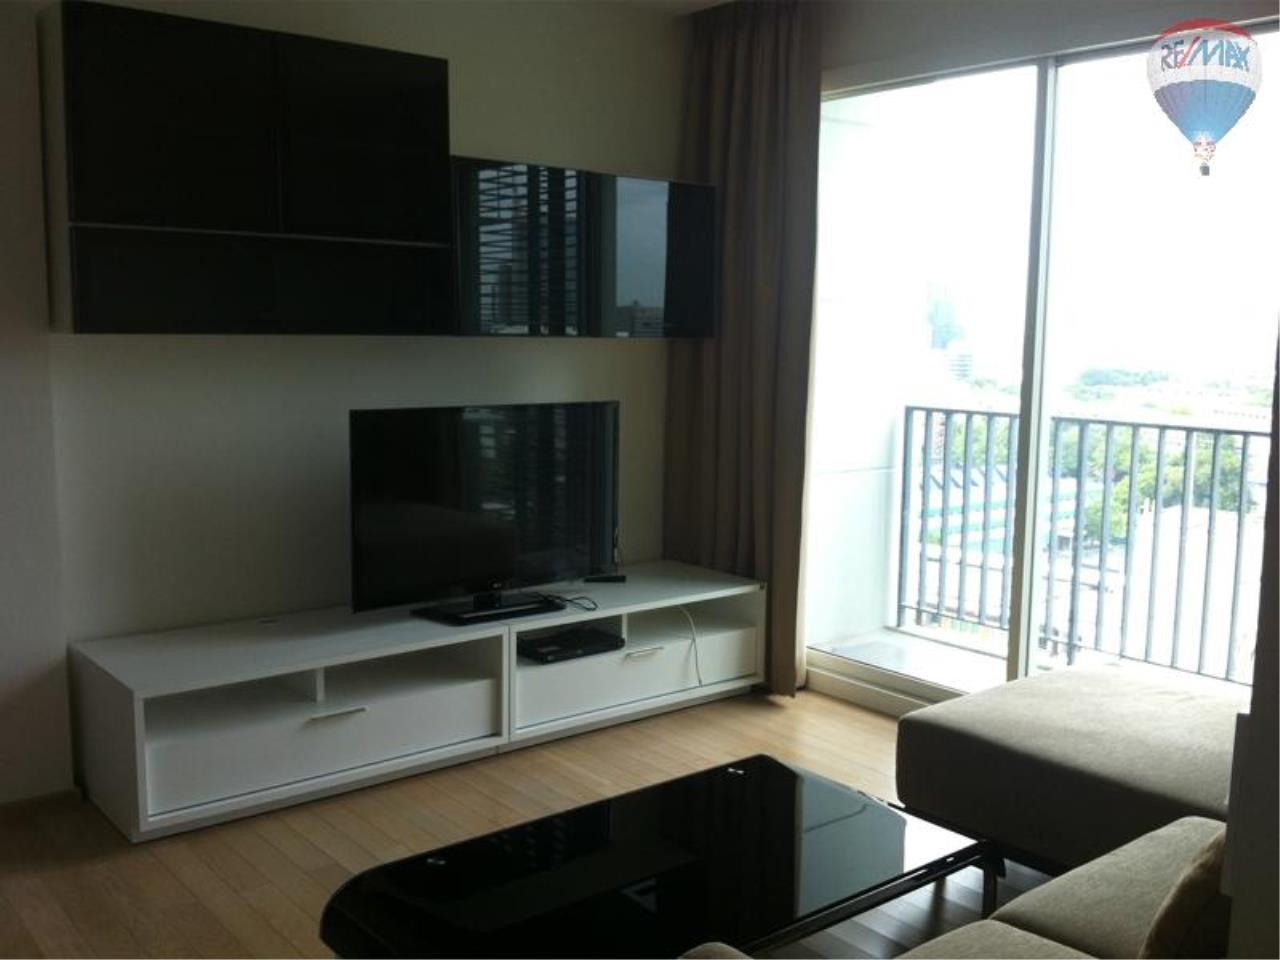 RE/MAX Properties Agency's 2 Bedroom 68.62 for Rent at Siri @ Sukhumvit 1